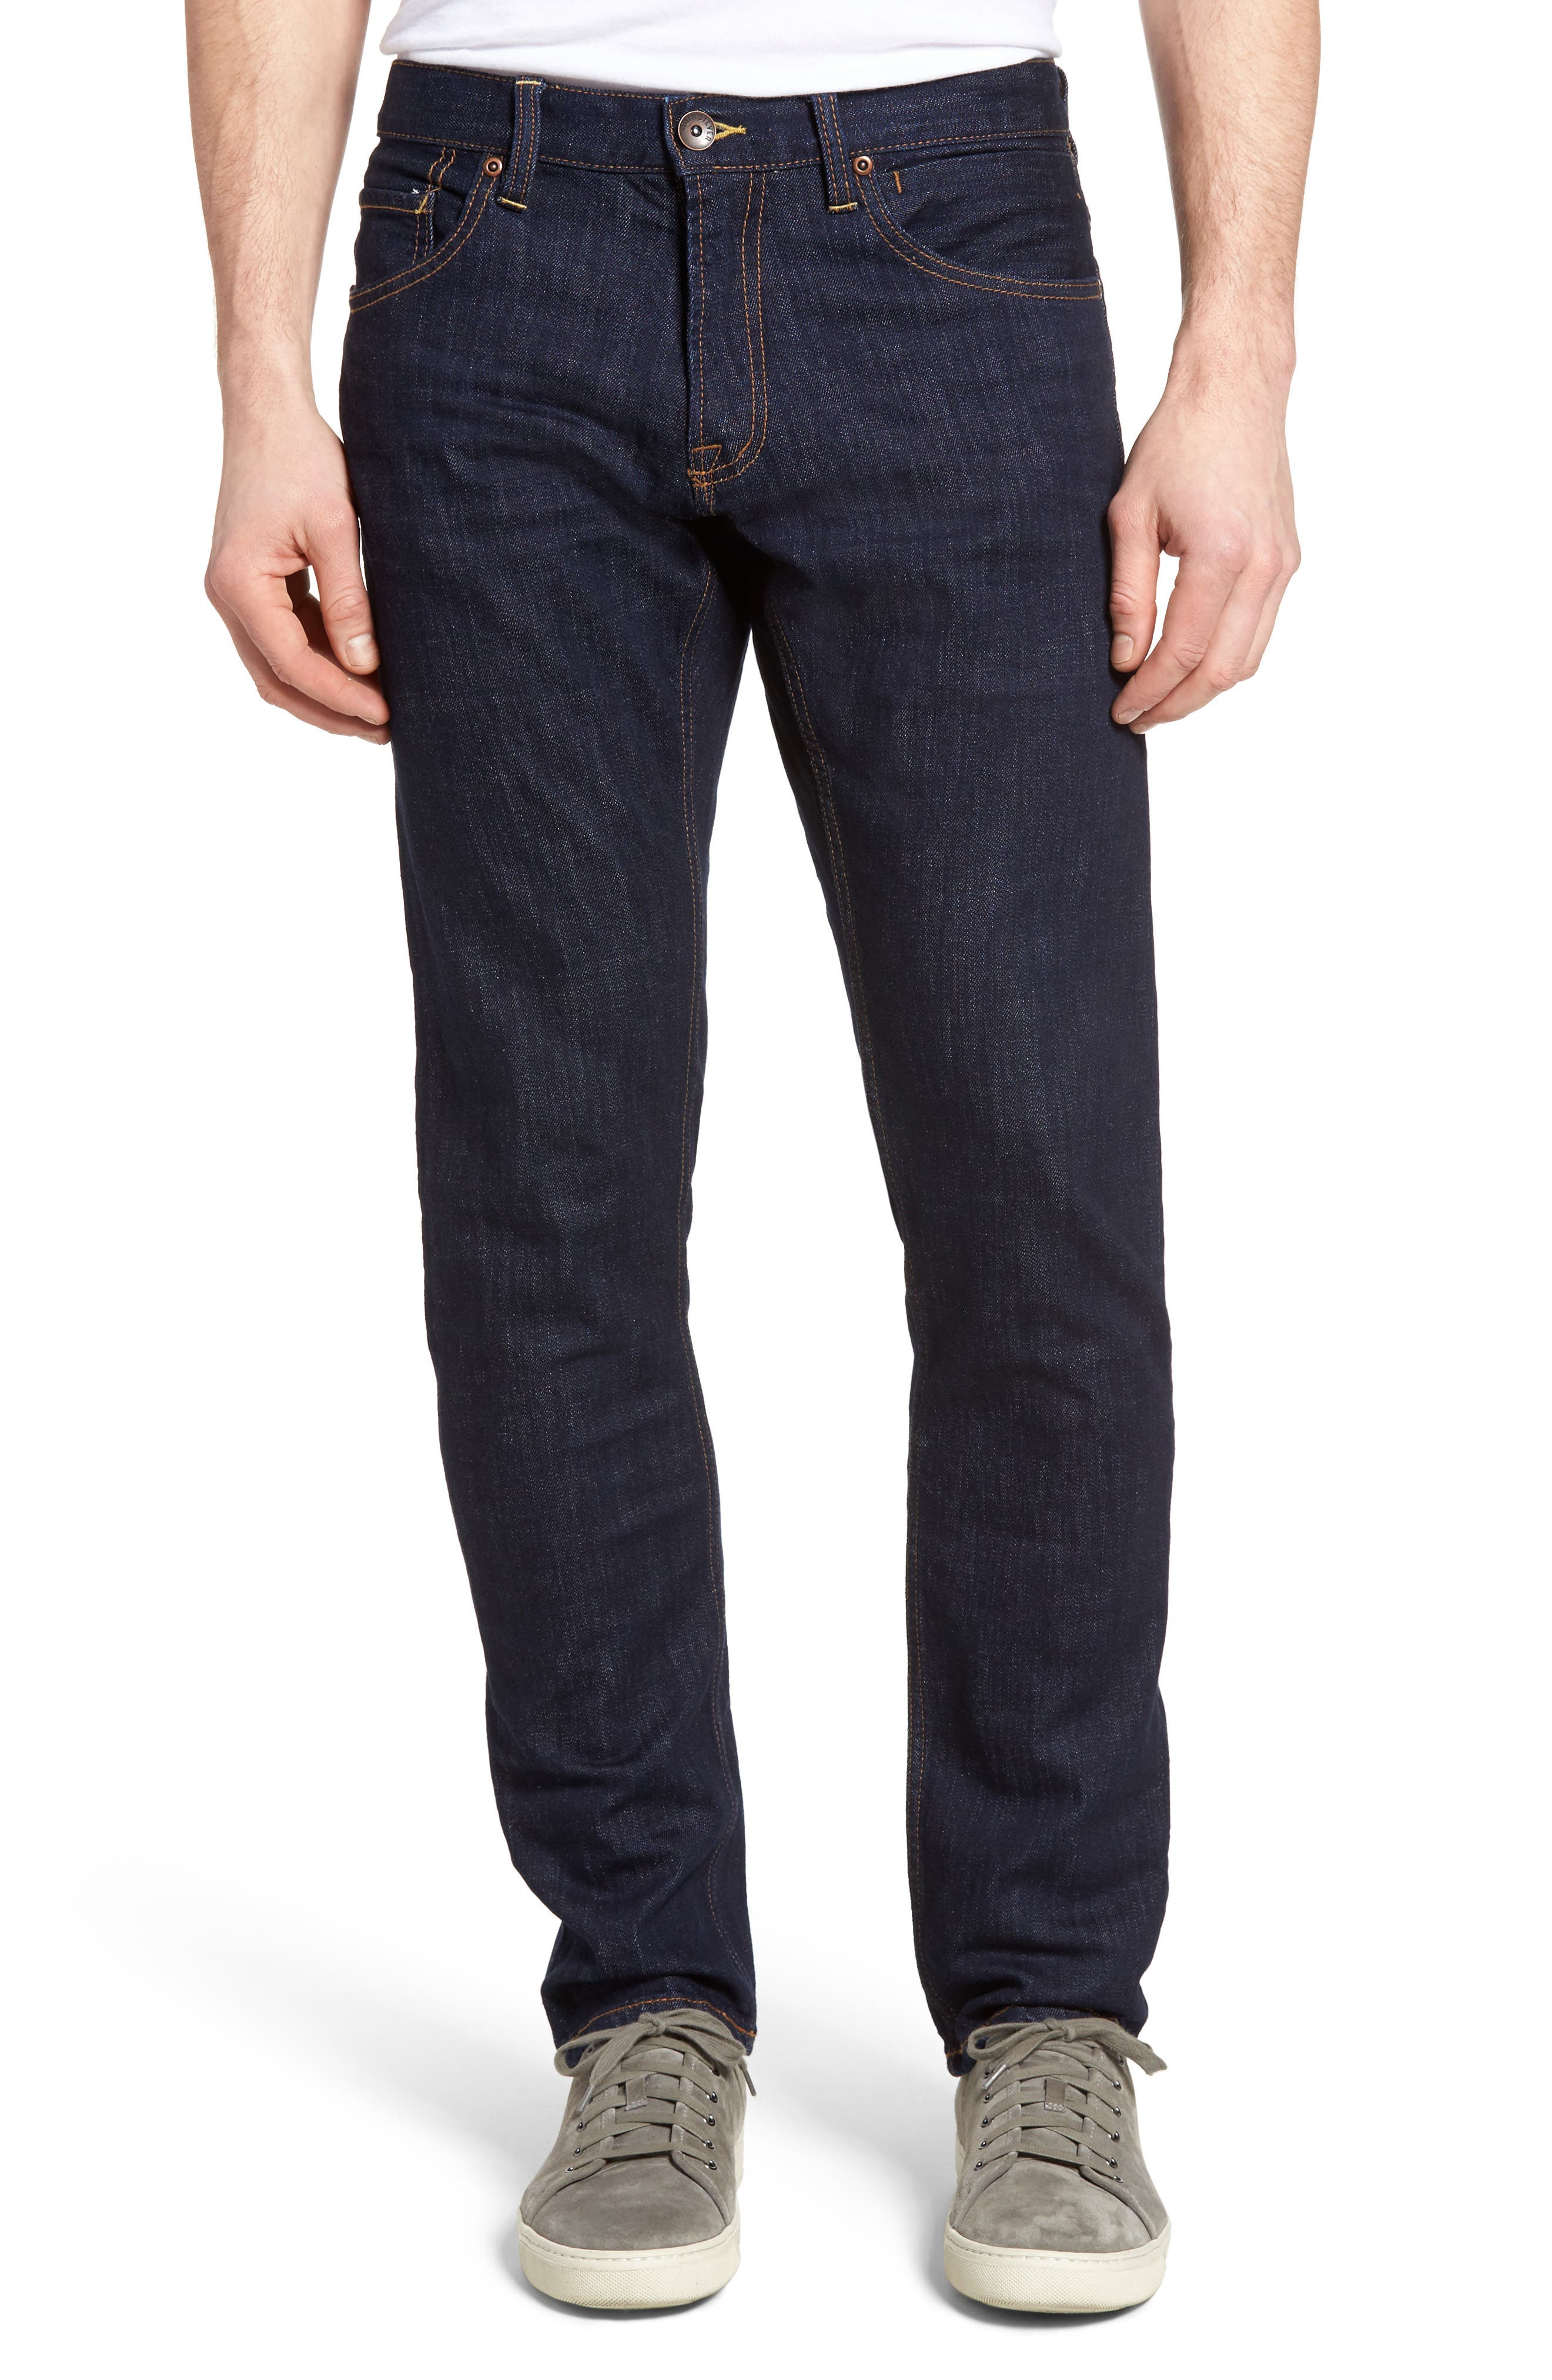 Alternate Image 1 Selected - Quiksilver Revolver Slim Fit Jeans (Rinse)